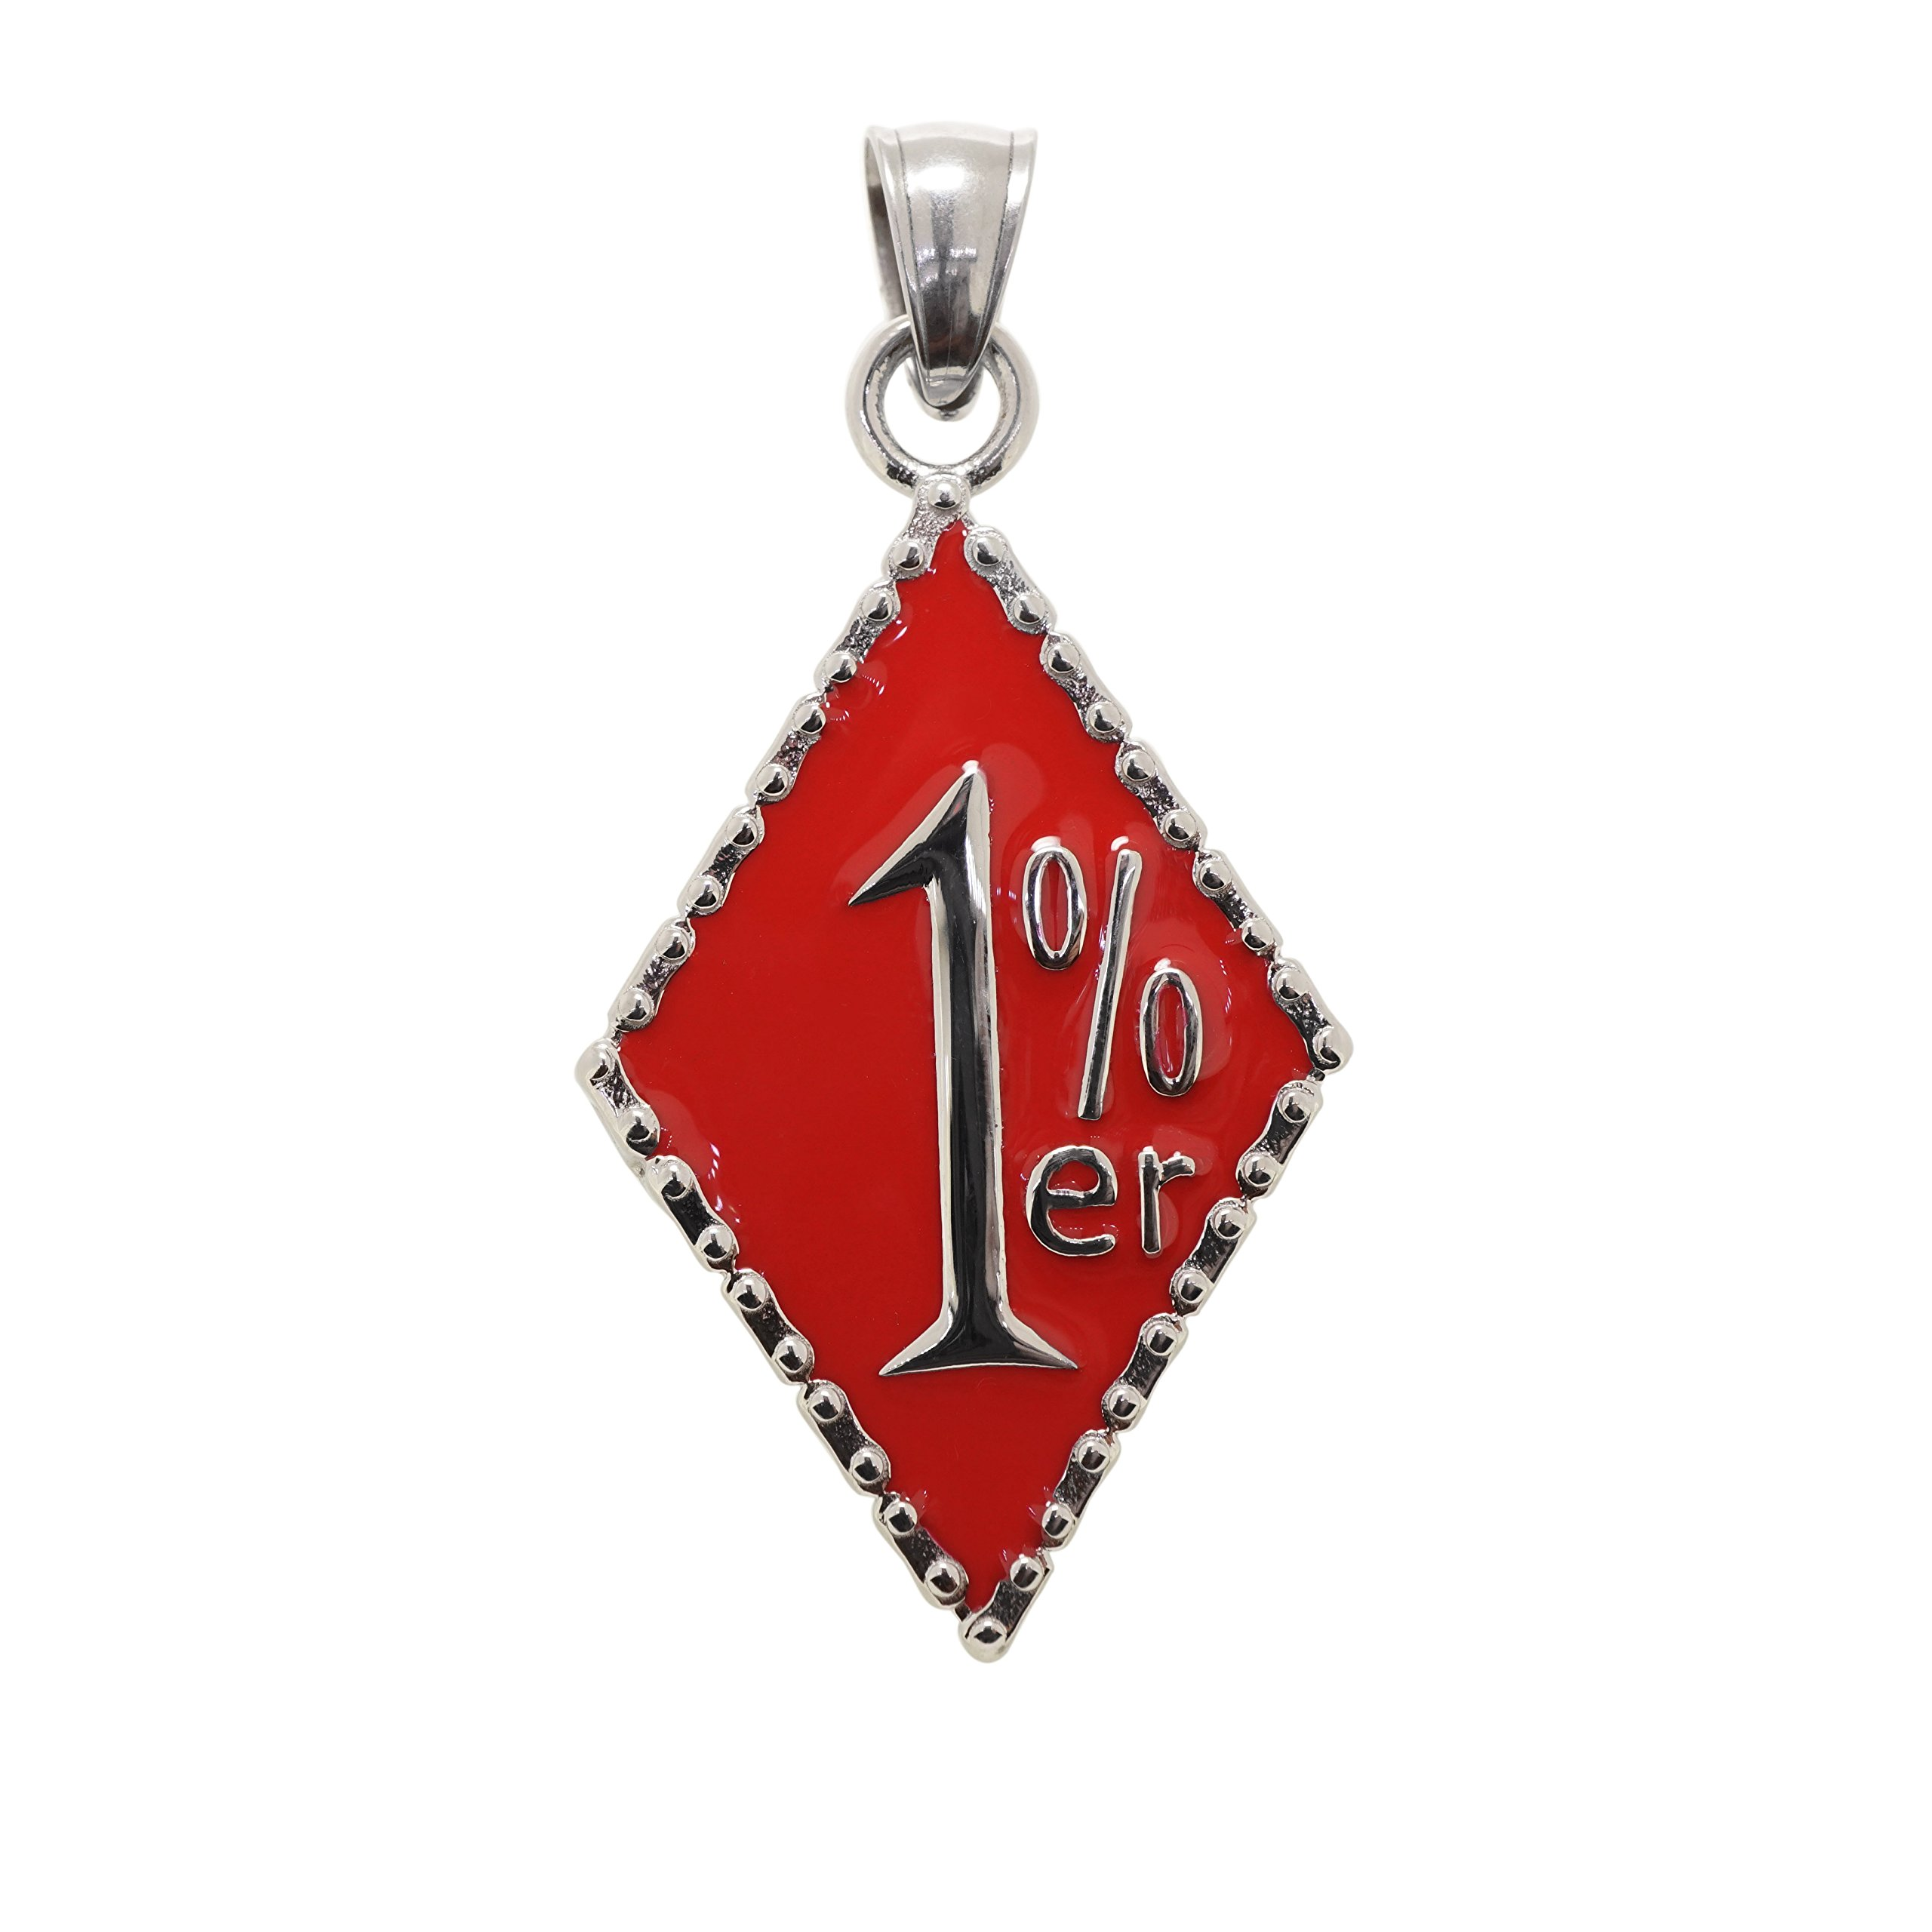 TheBikerMetal 316L Stainless Steel 1% ER Pendant w FREE Chain for 81 Outlaw Harley Motor Biker (Red(TP-60)) by TheBikerMetal